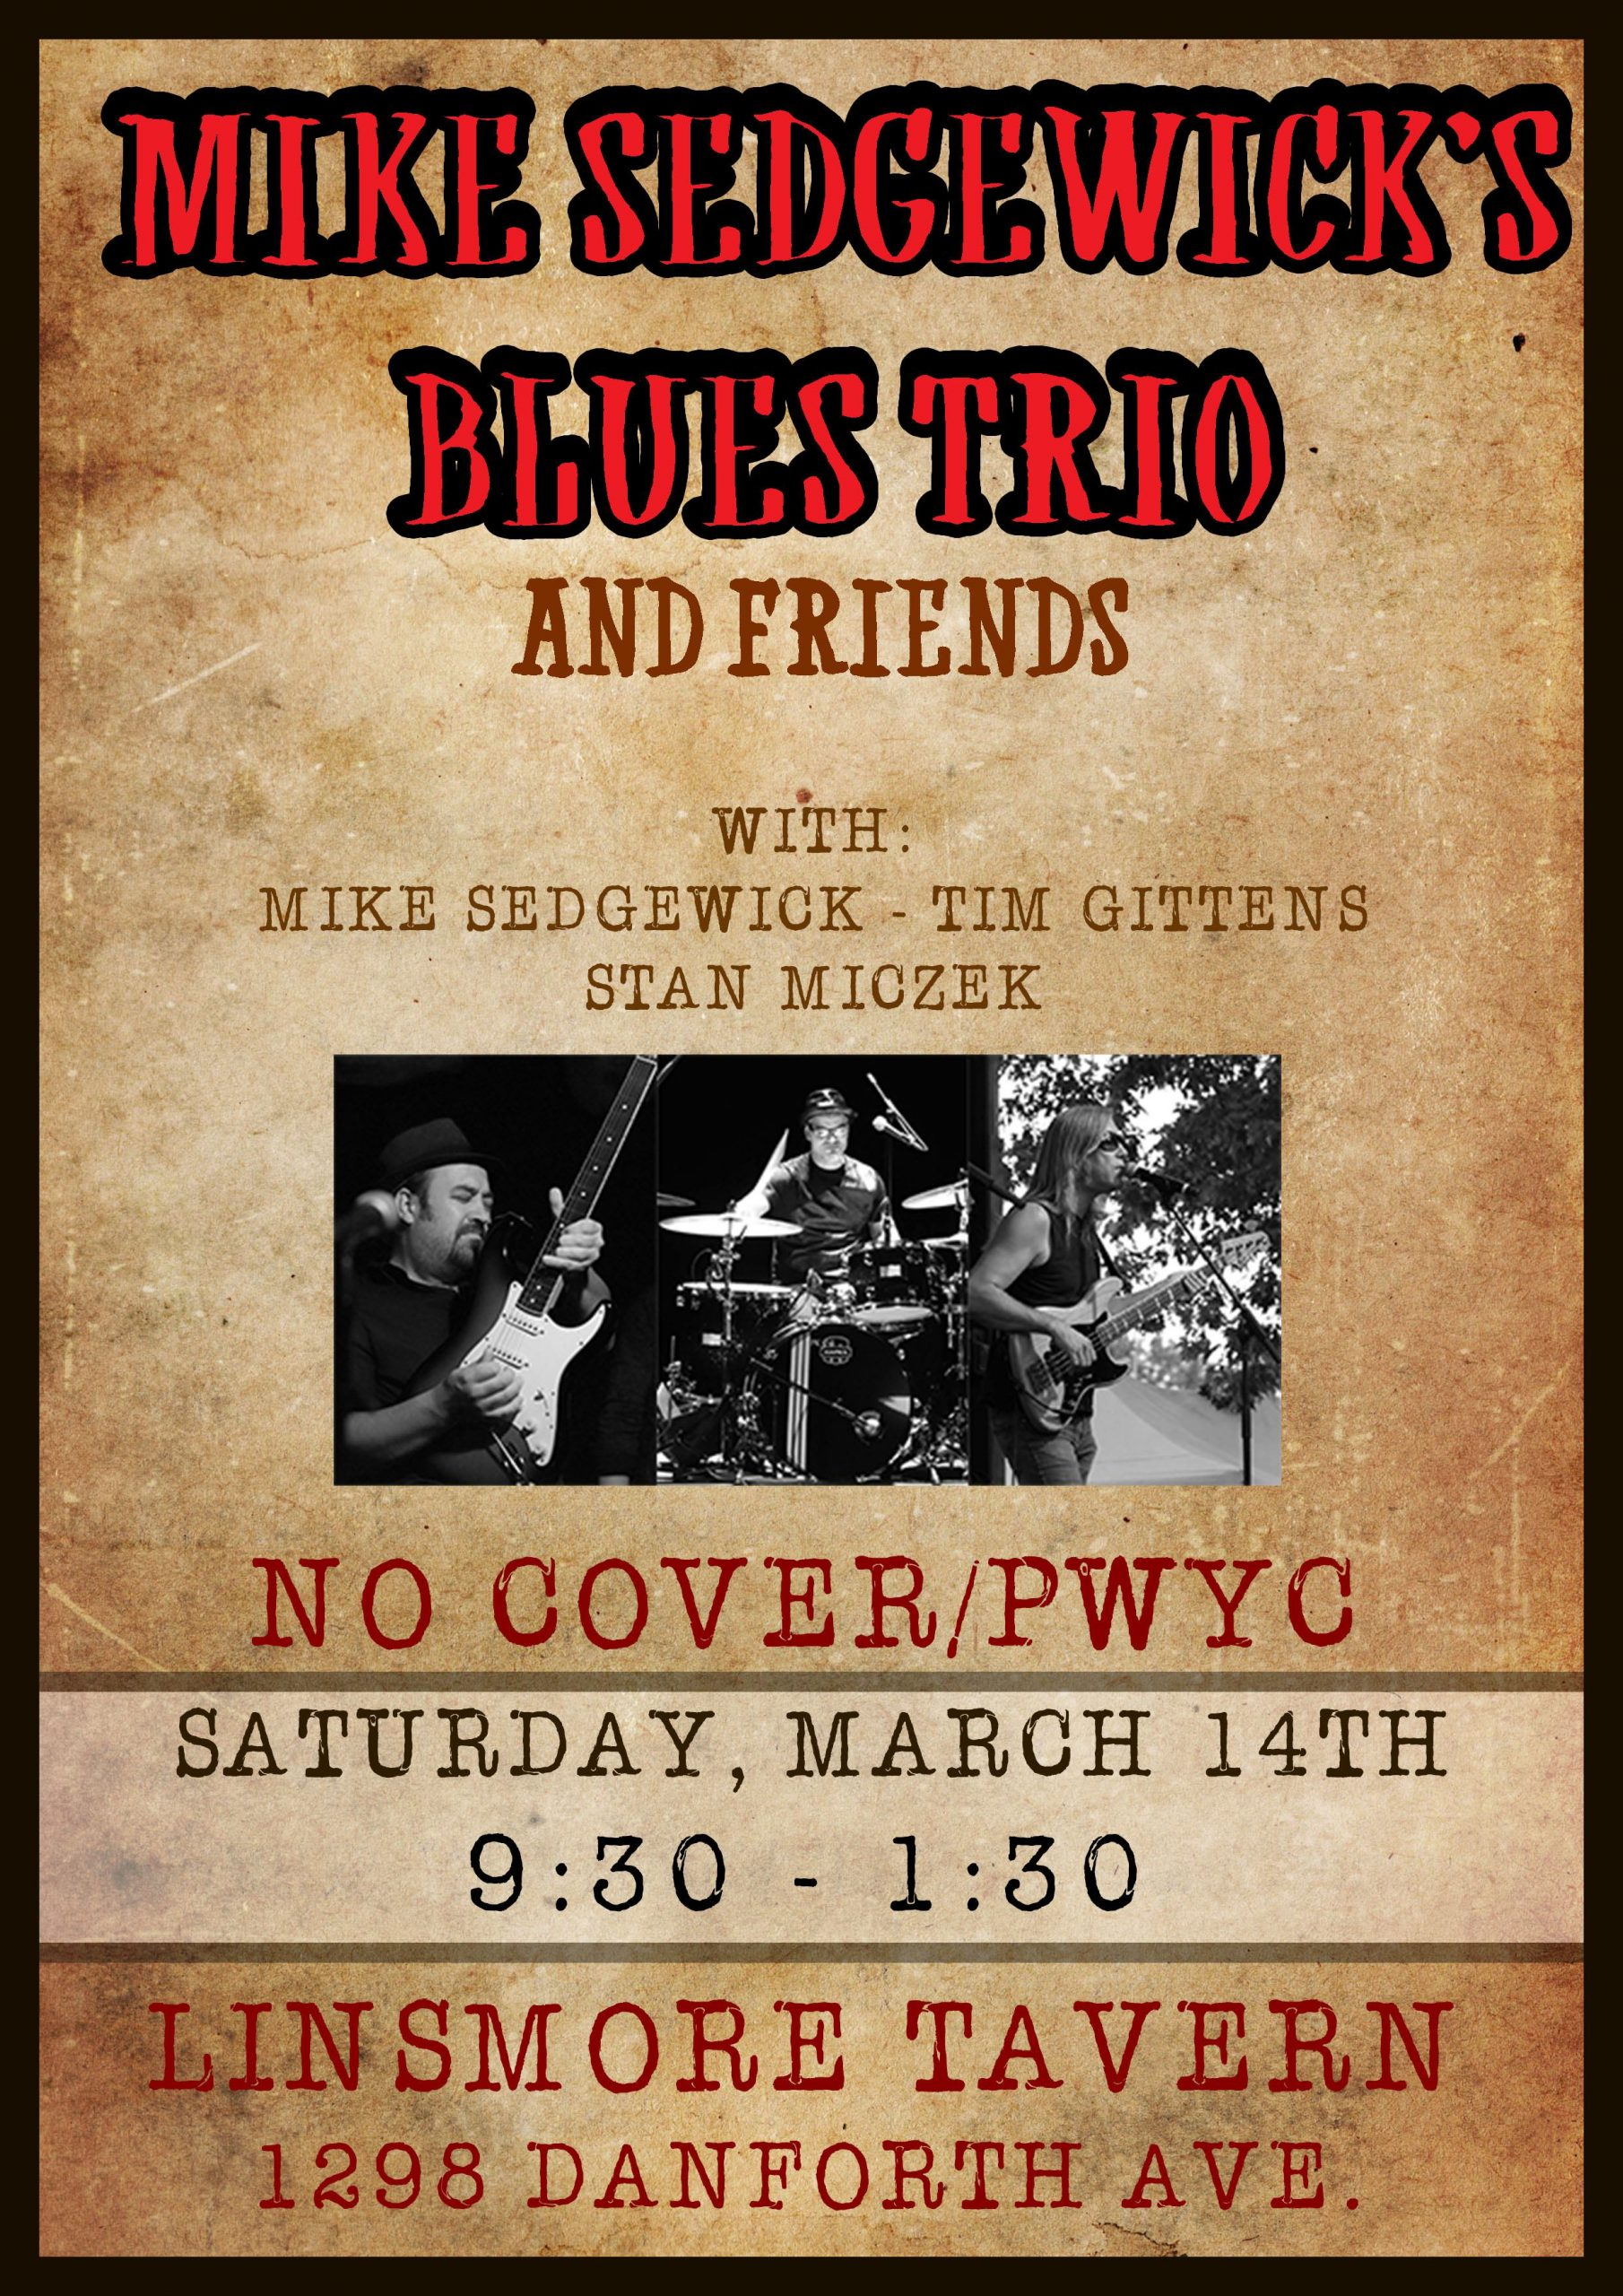 Mike Sedgewick's Blues Trio and Friends